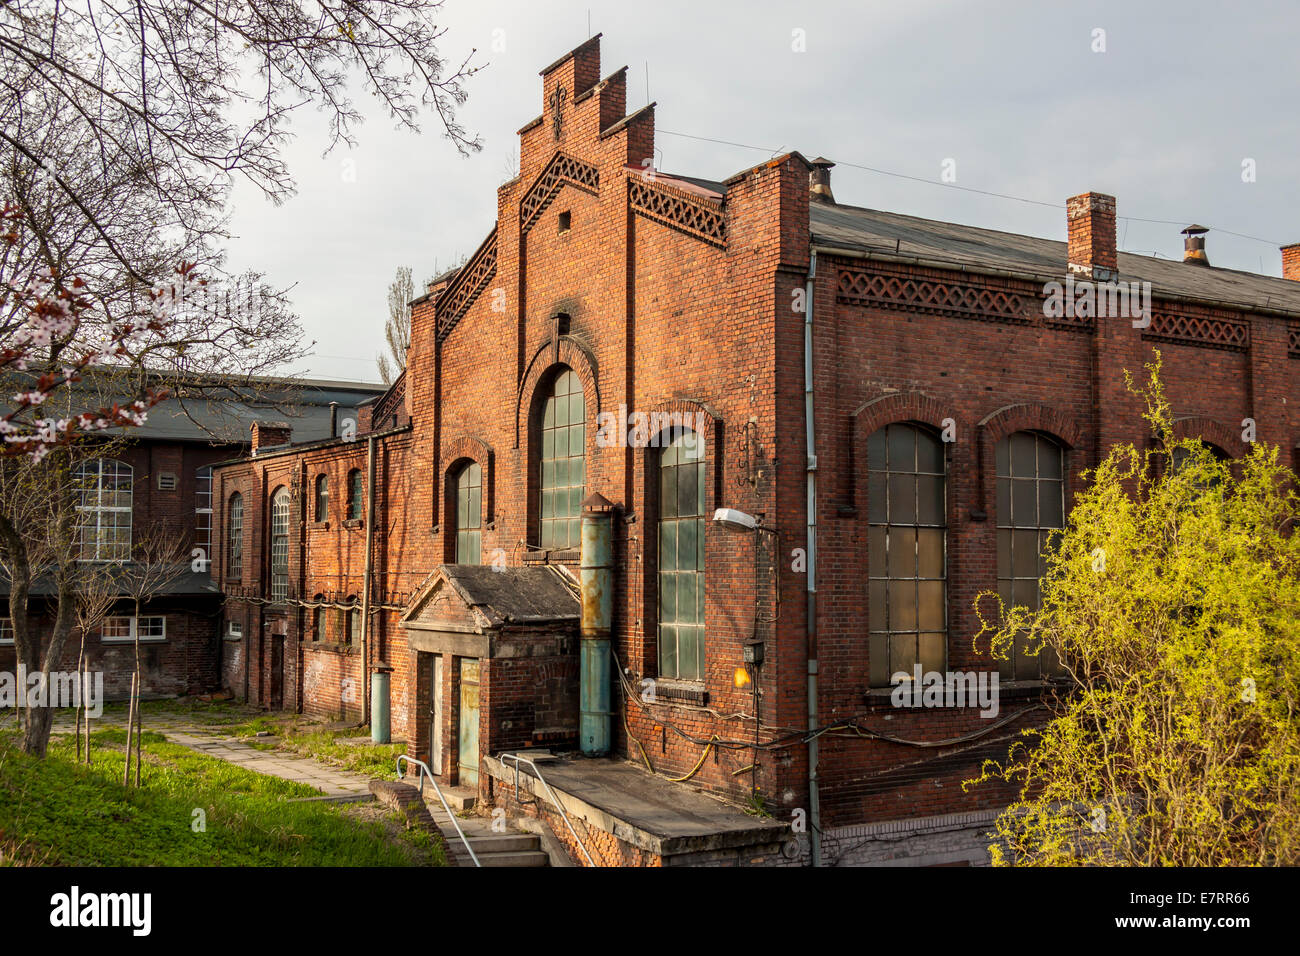 Buildings of coal mine - Rybnik (Rymer), Poland. - Stock Image